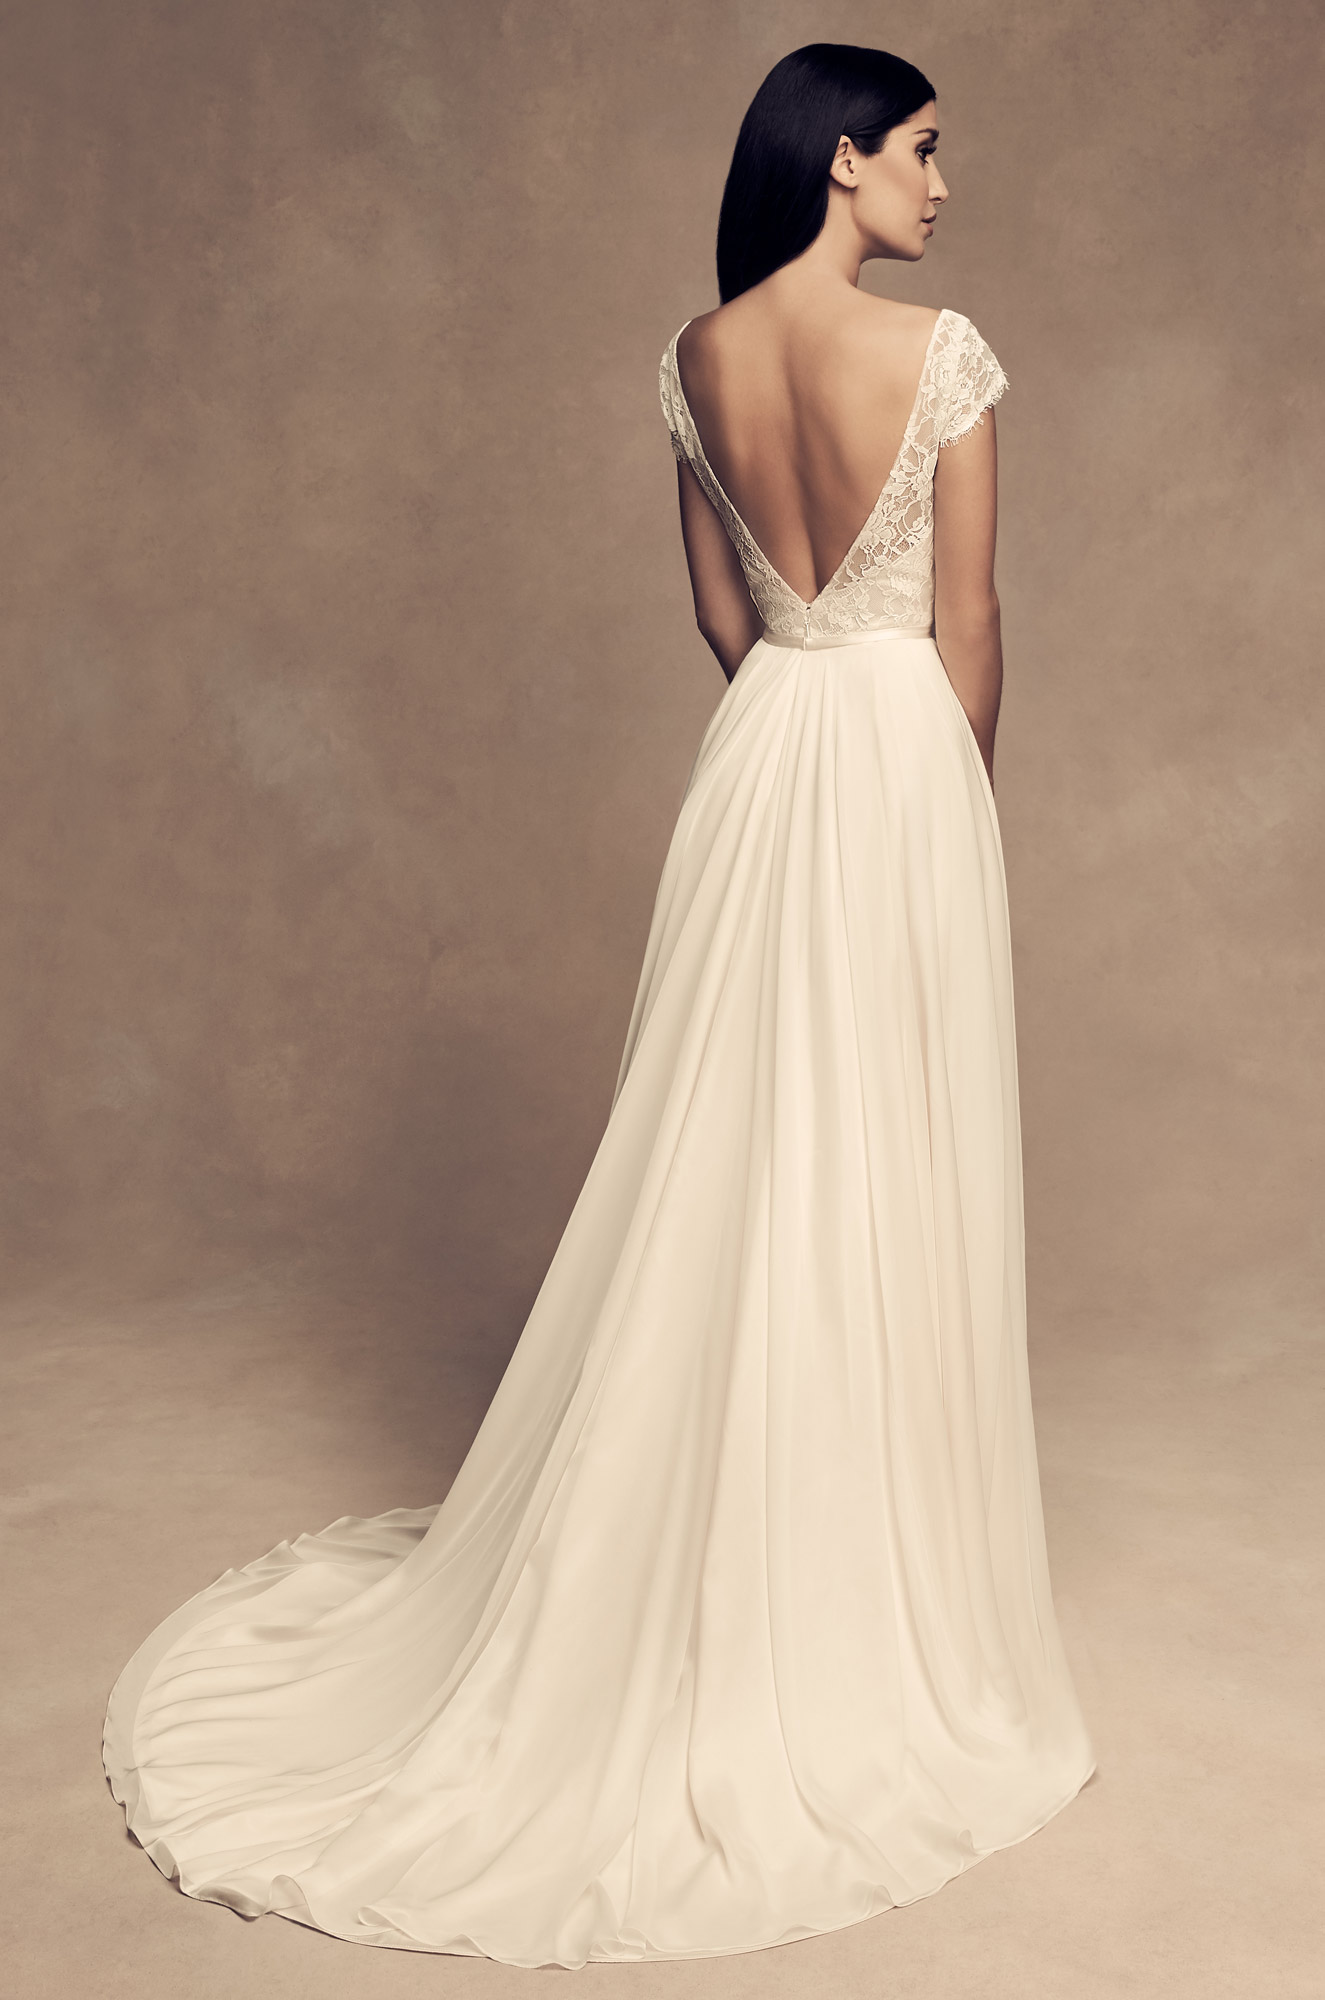 Flowing Organza Wedding Dress - Style #4816 | Paloma Blanca